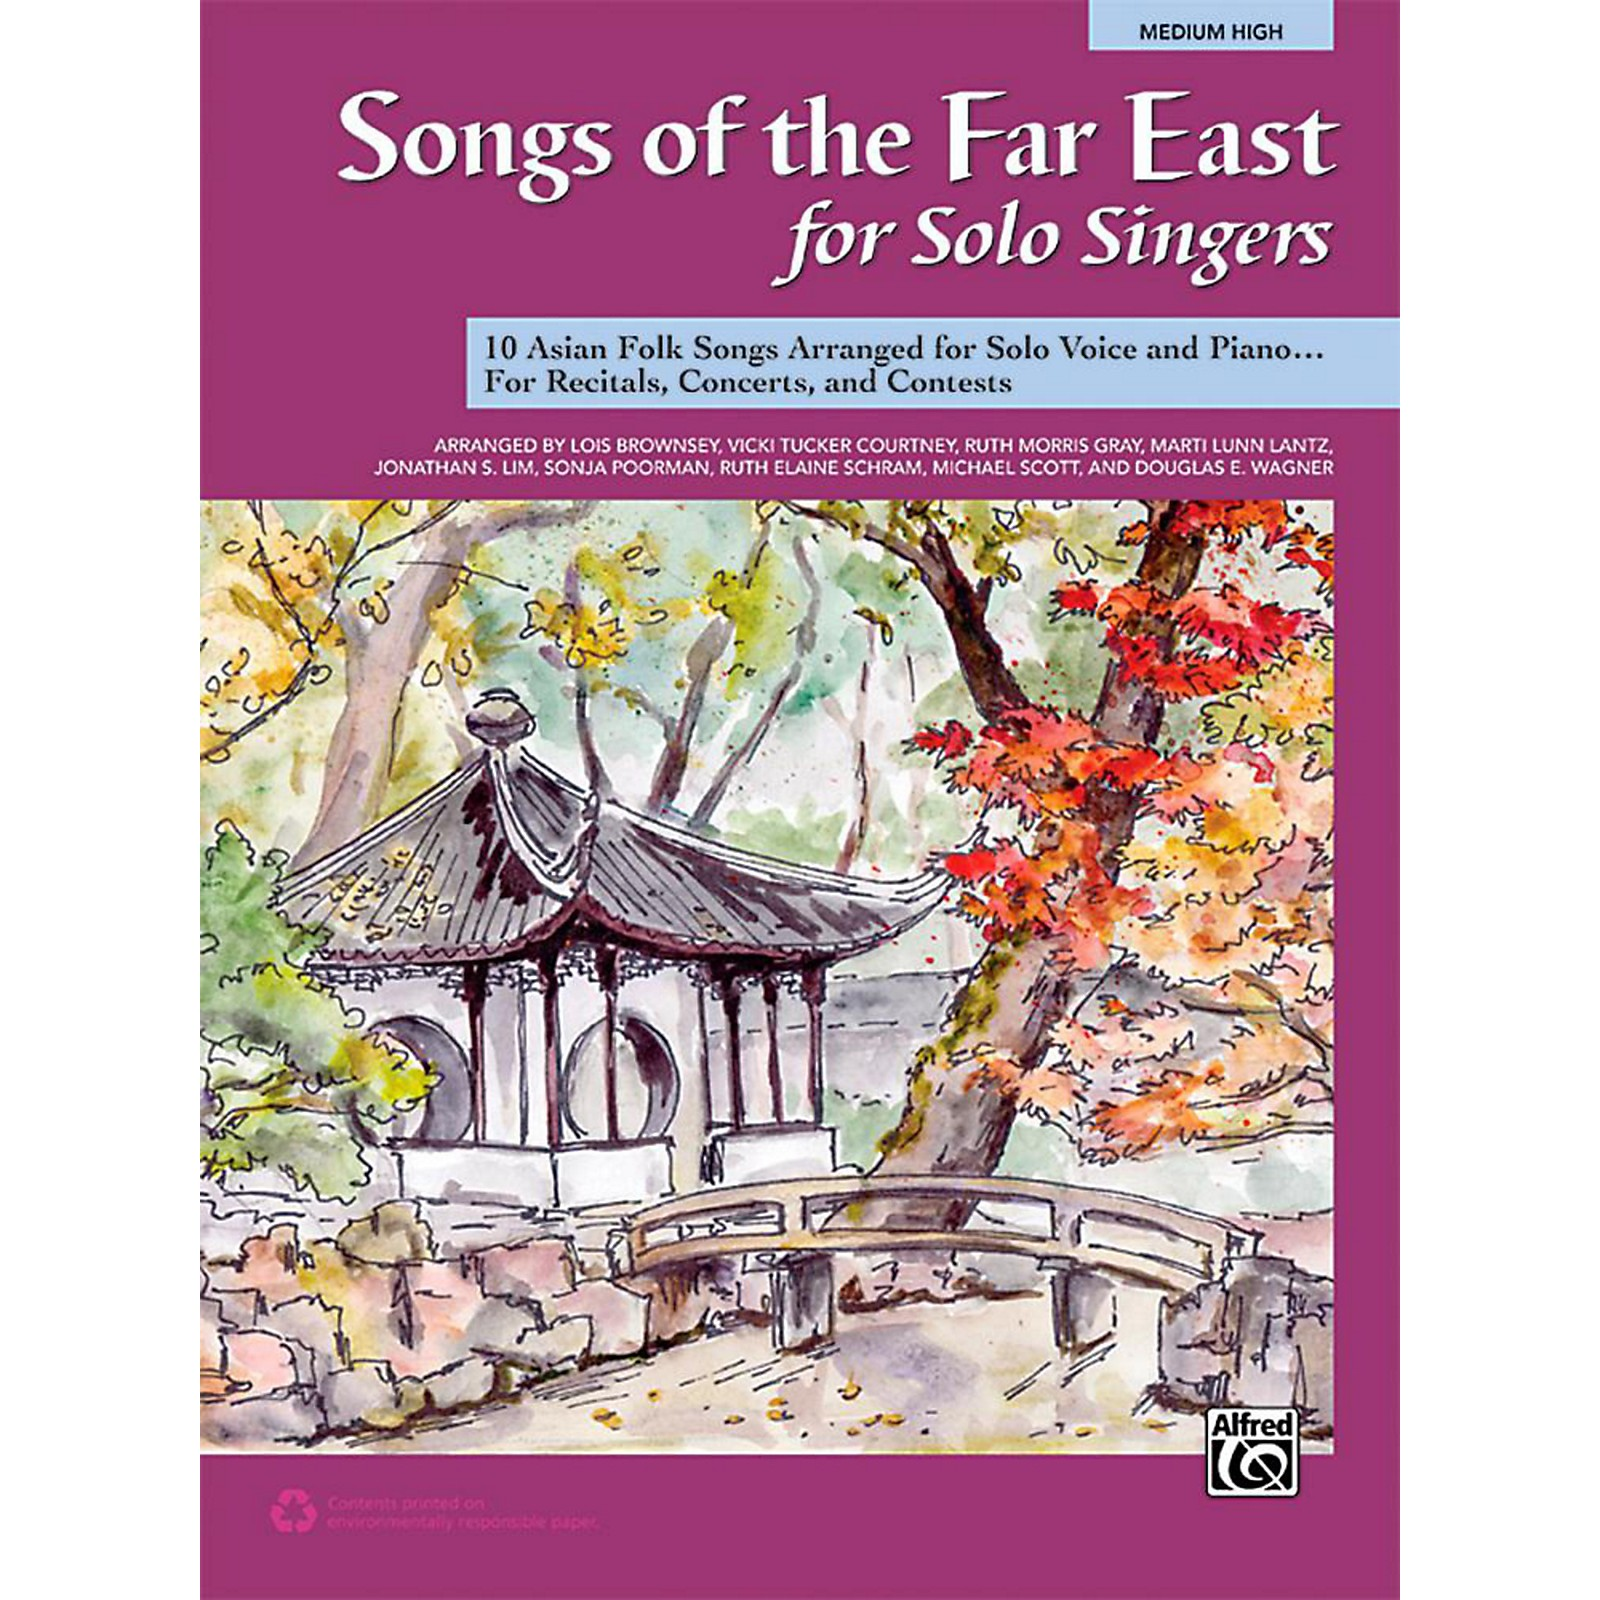 Alfred Songs of the Far East for Solo Singers Book Medium High